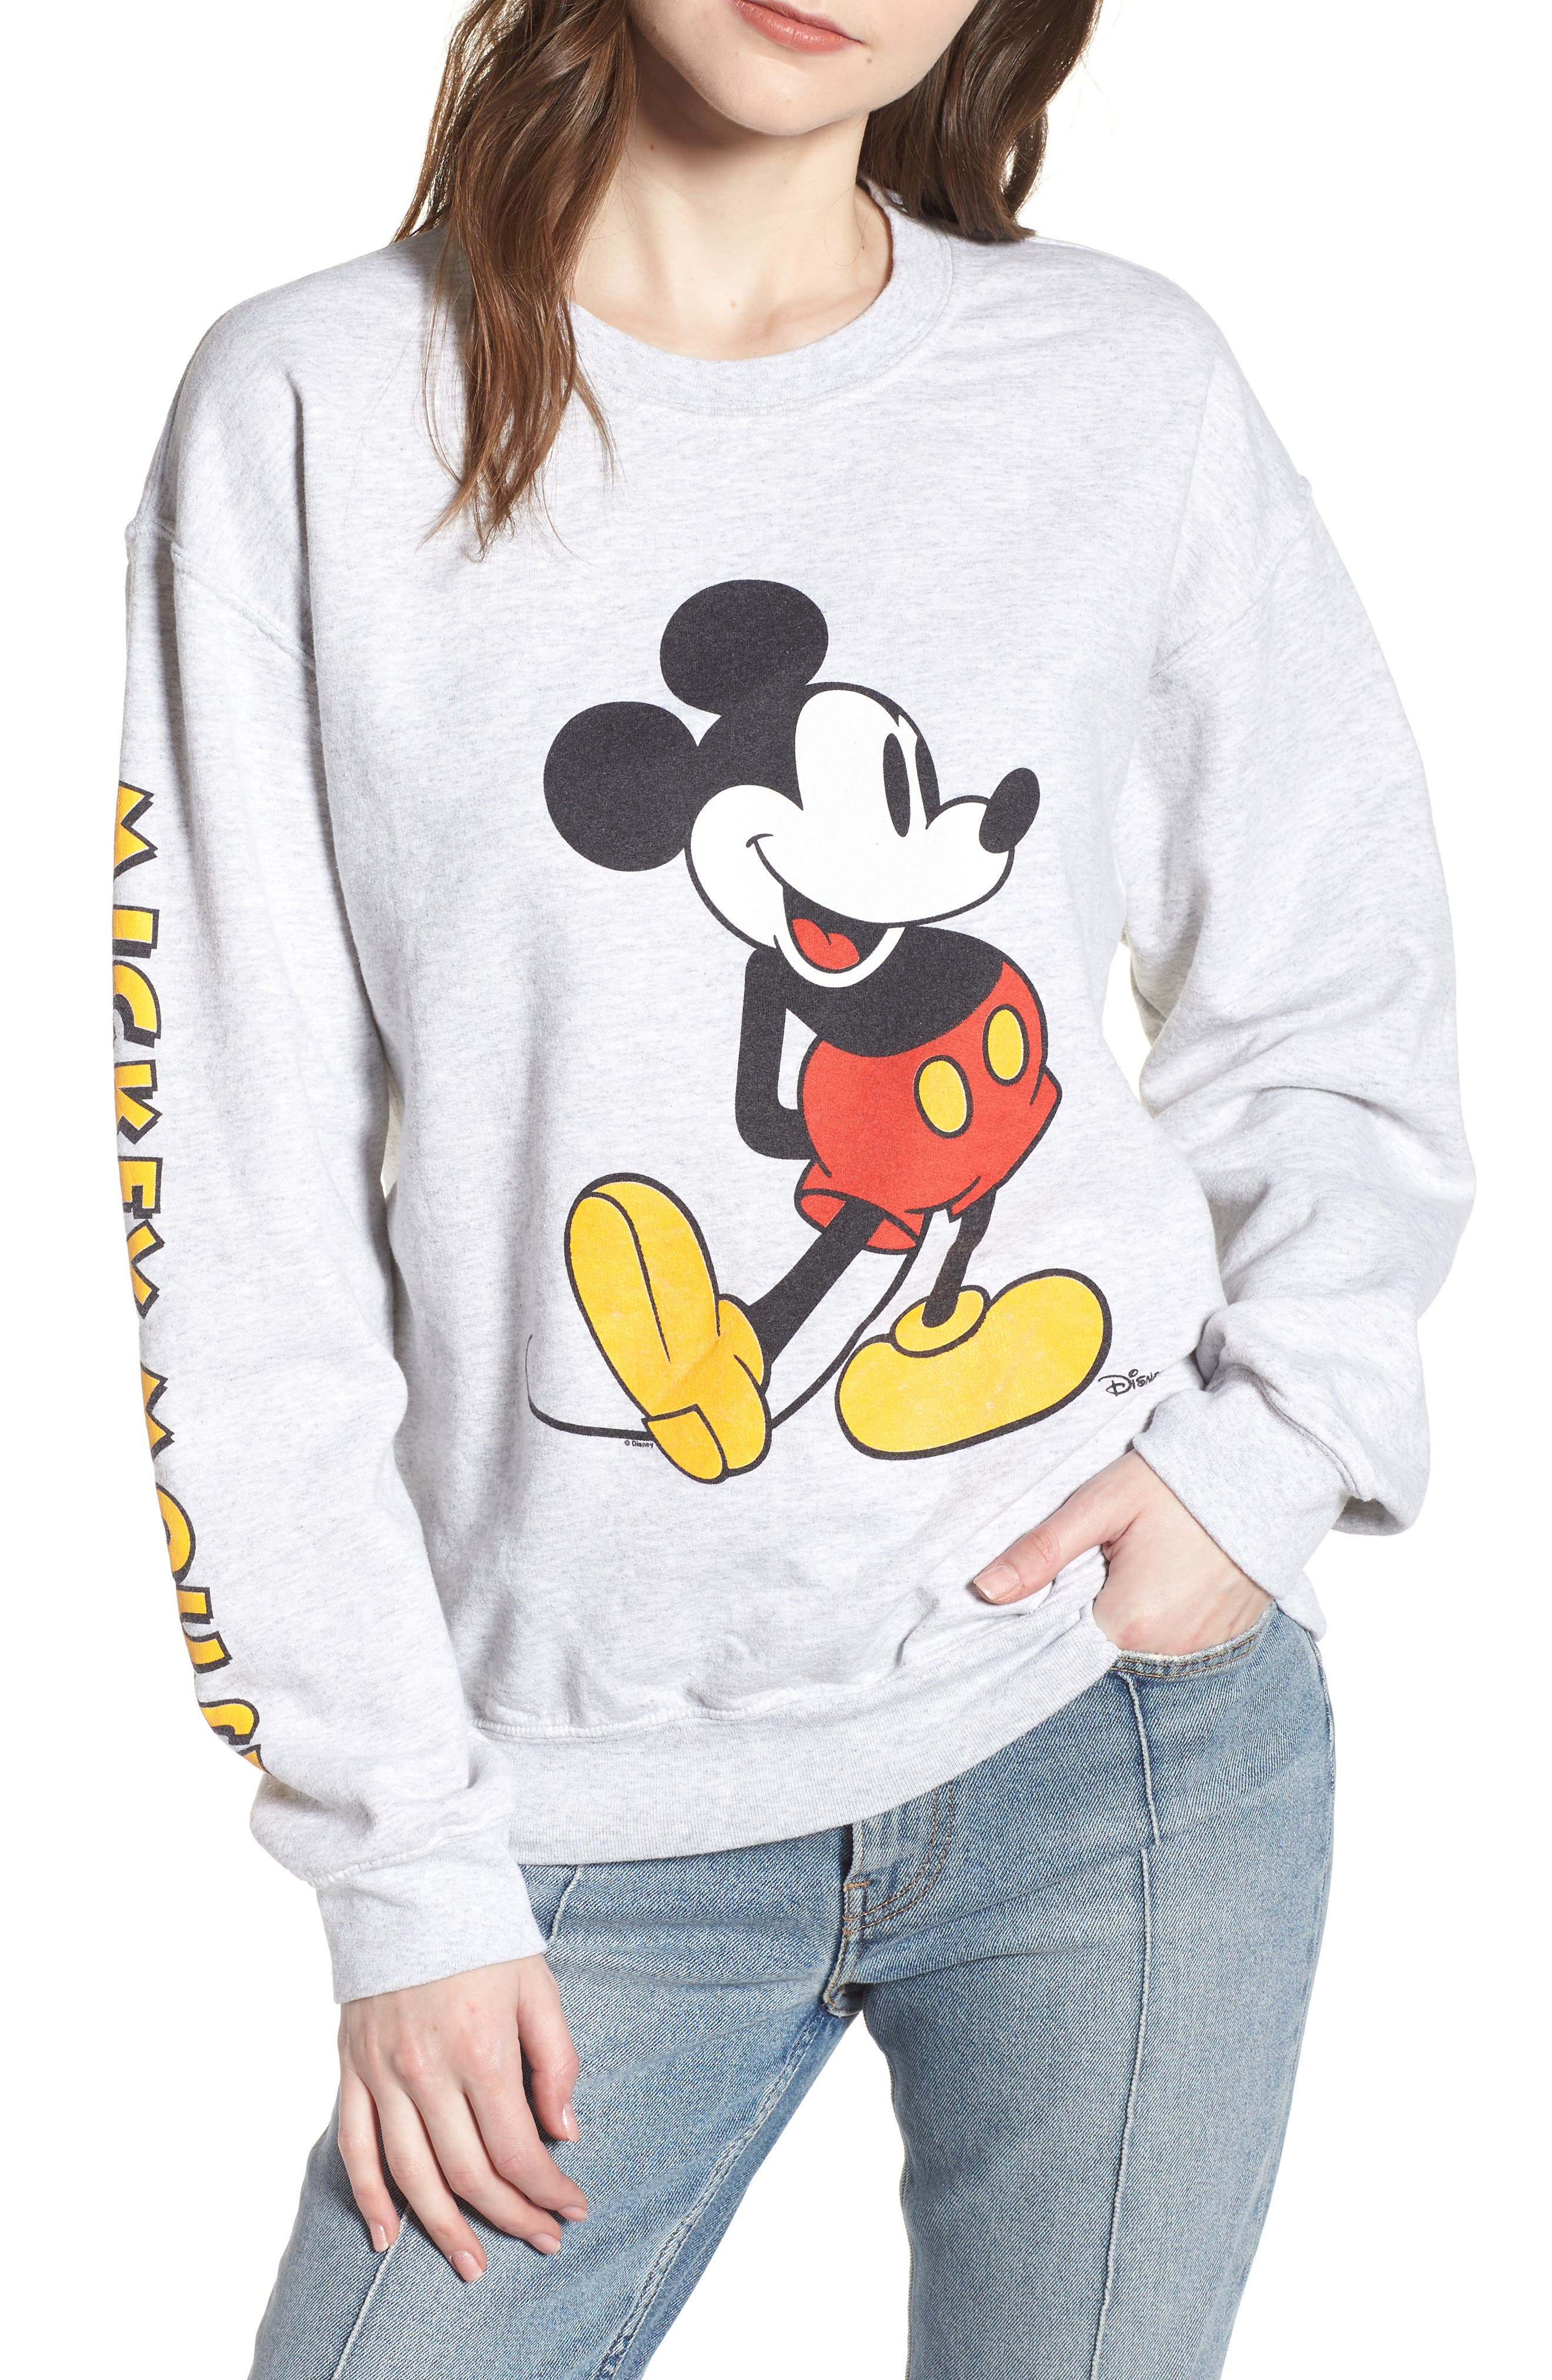 Mickey Mouse Oversize Sweatshirt,                             Main thumbnail 1, color,                             Ash Heather